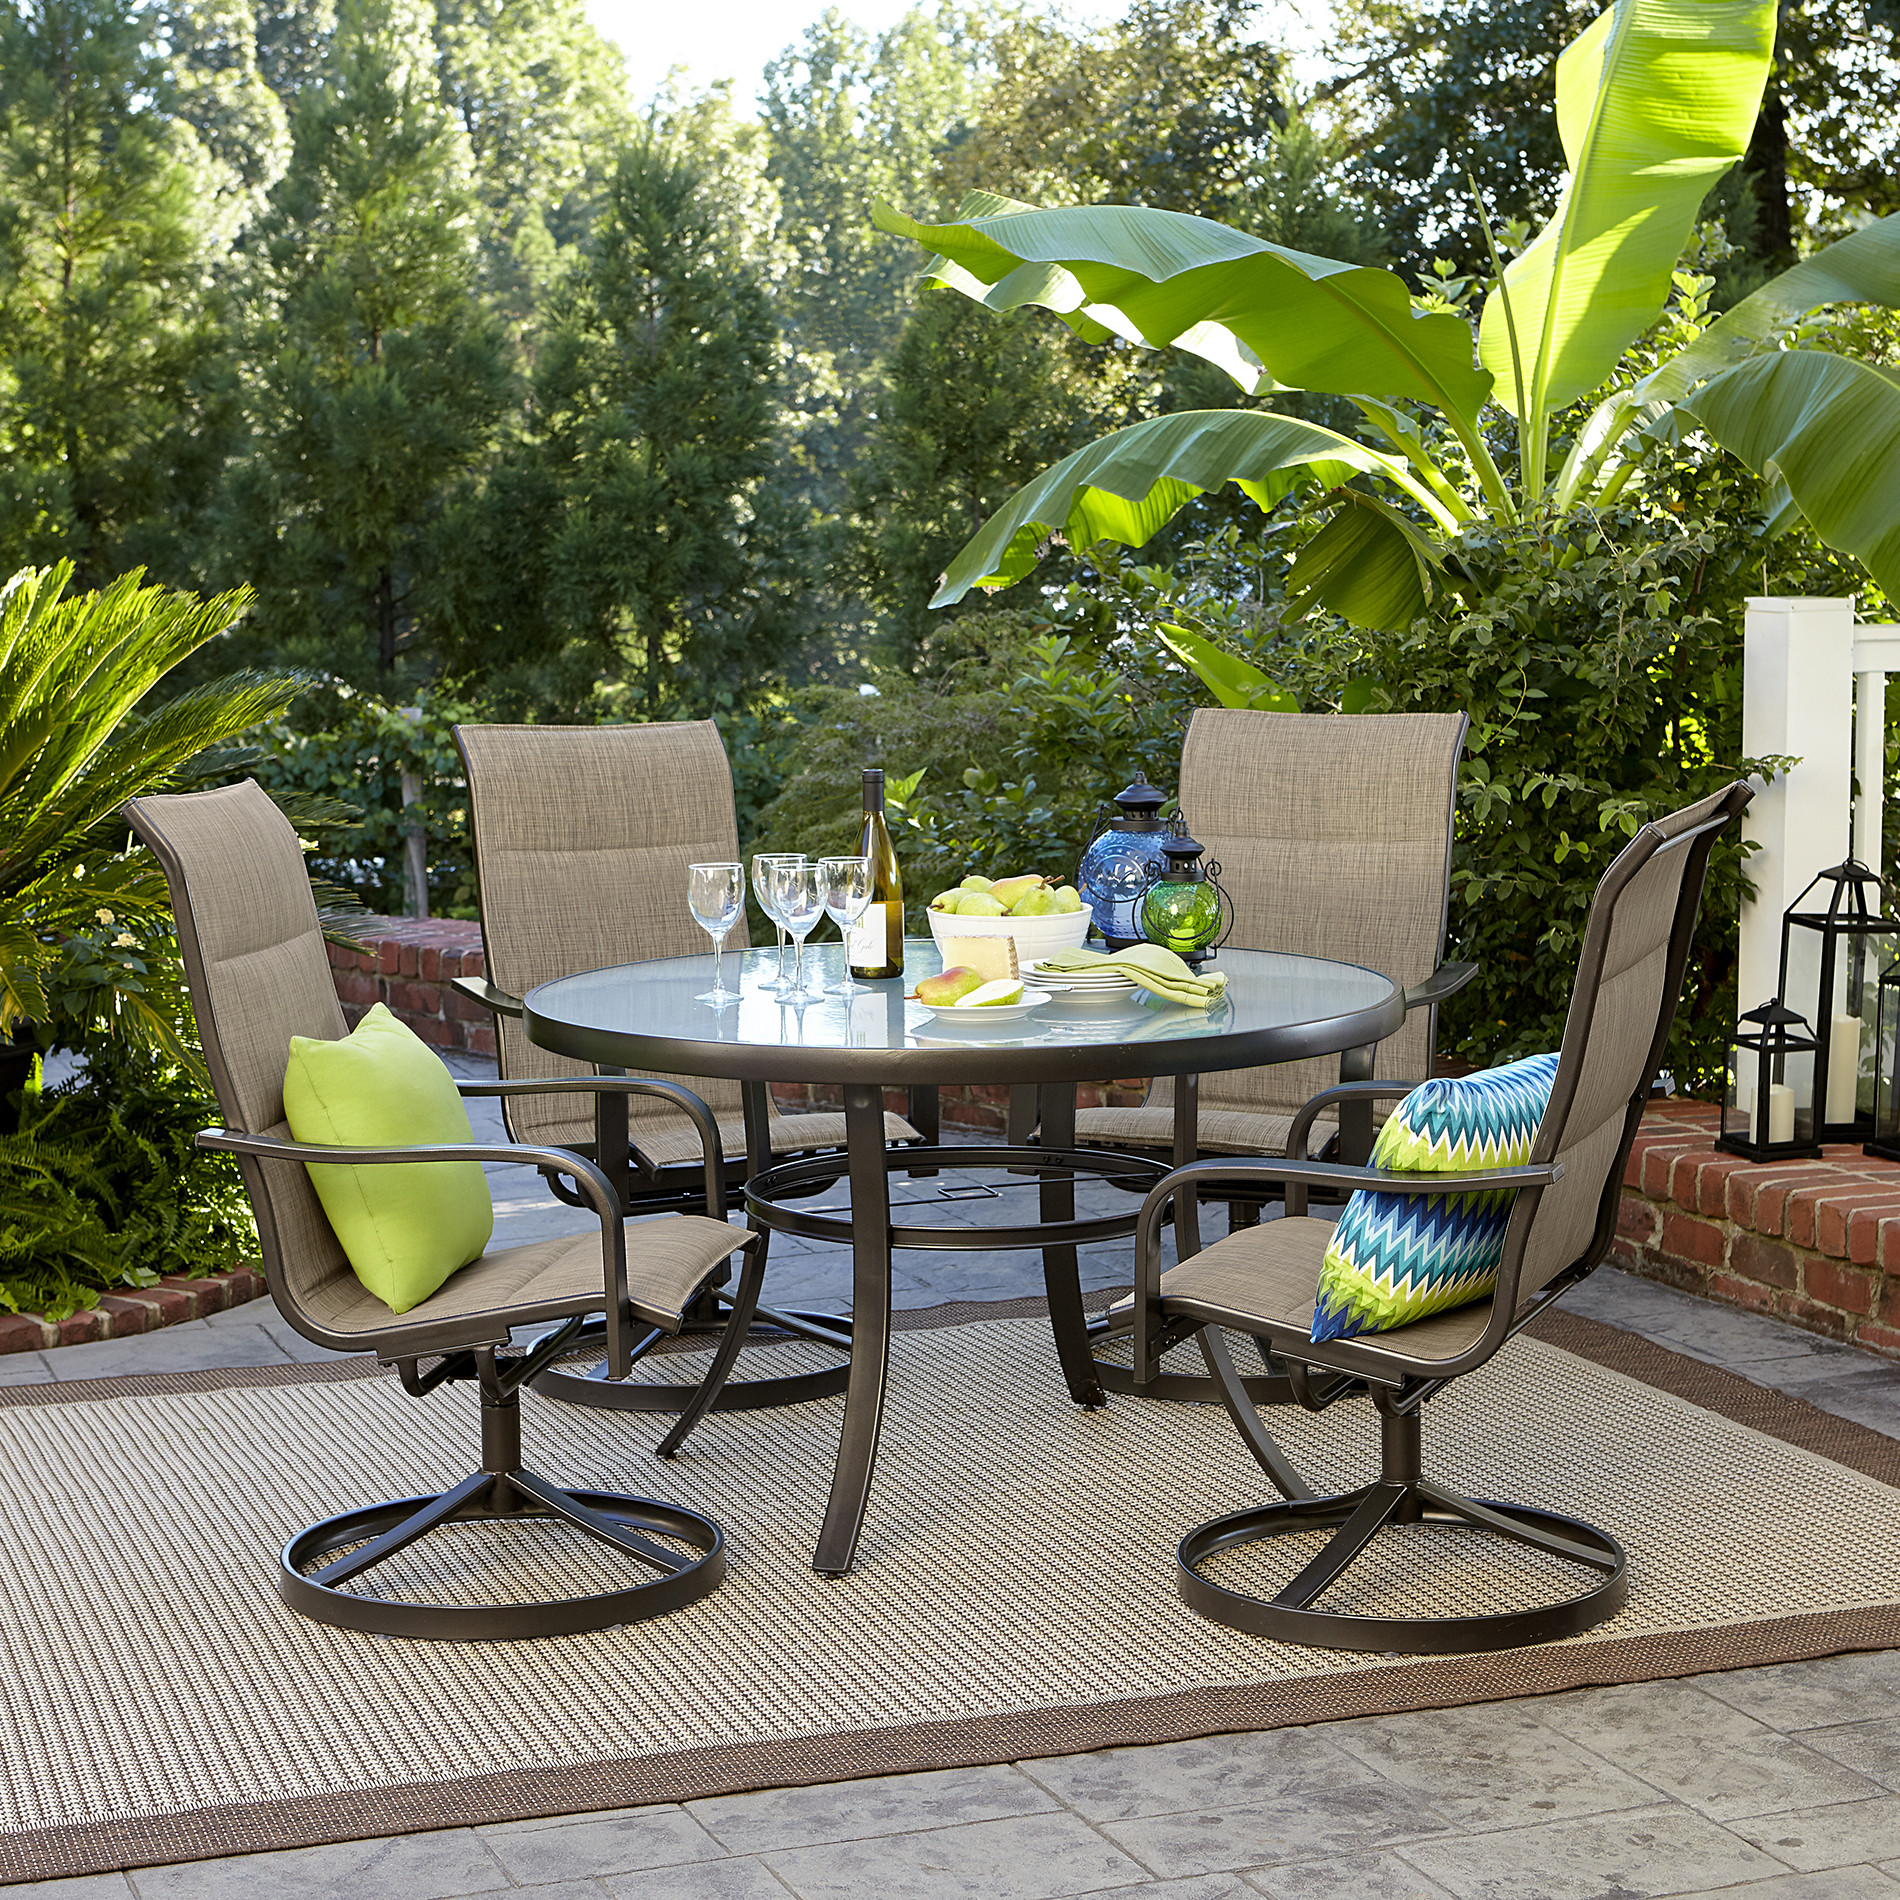 Best ideas about Outdoor Patio Dining Sets . Save or Pin Garden Oasis Miranda 5 Piece Dining Set Now.